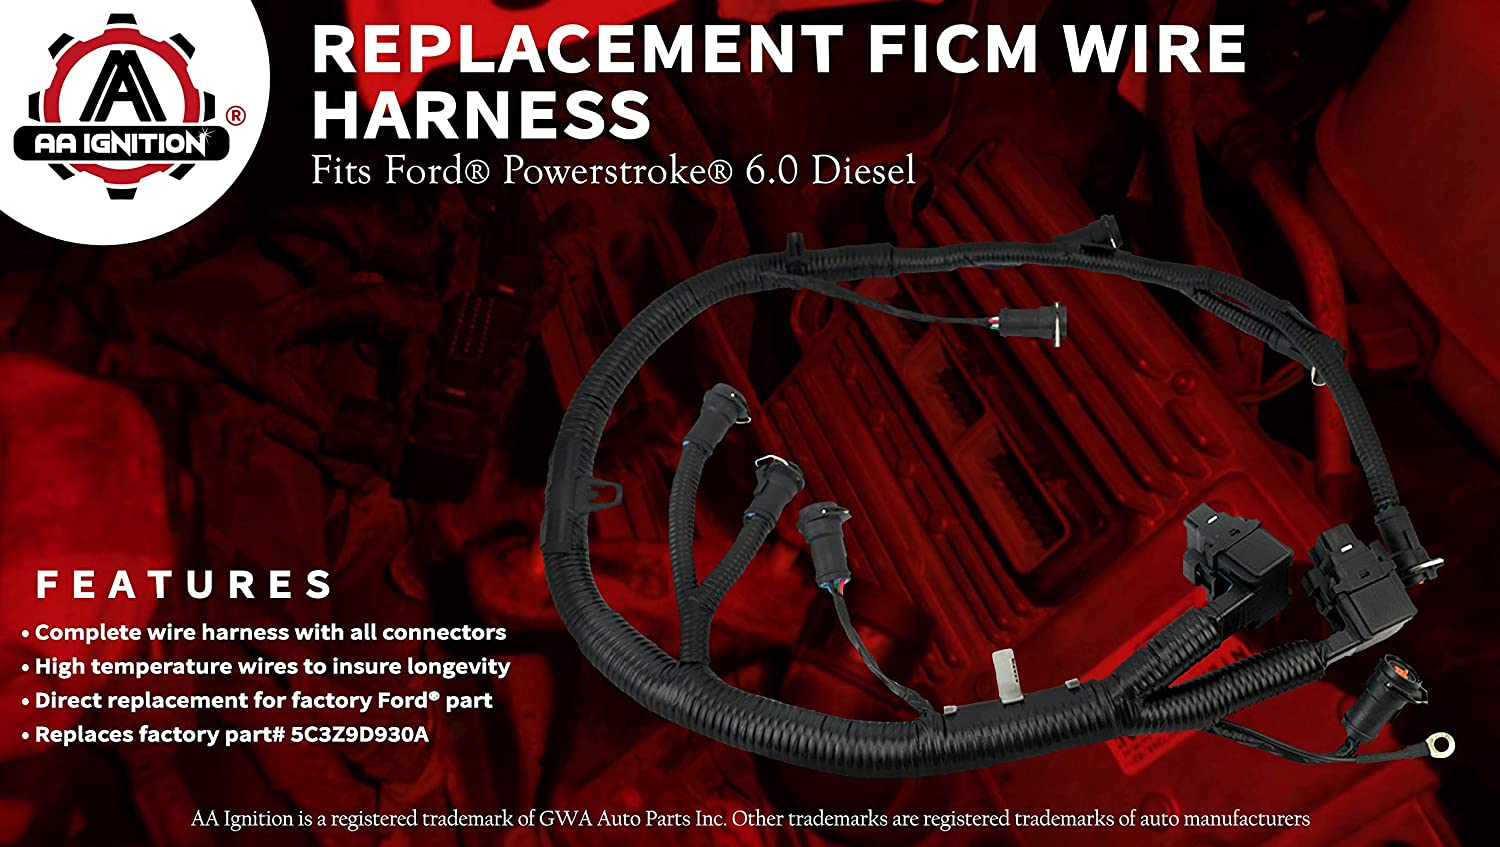 Ficm Engine Fuel Injector Complete Wire Harness 96 Ford Diesel Wiring Replaces Part 5c3z9d930a Fits Powerstroke 60l 2003 2004 2005 2006